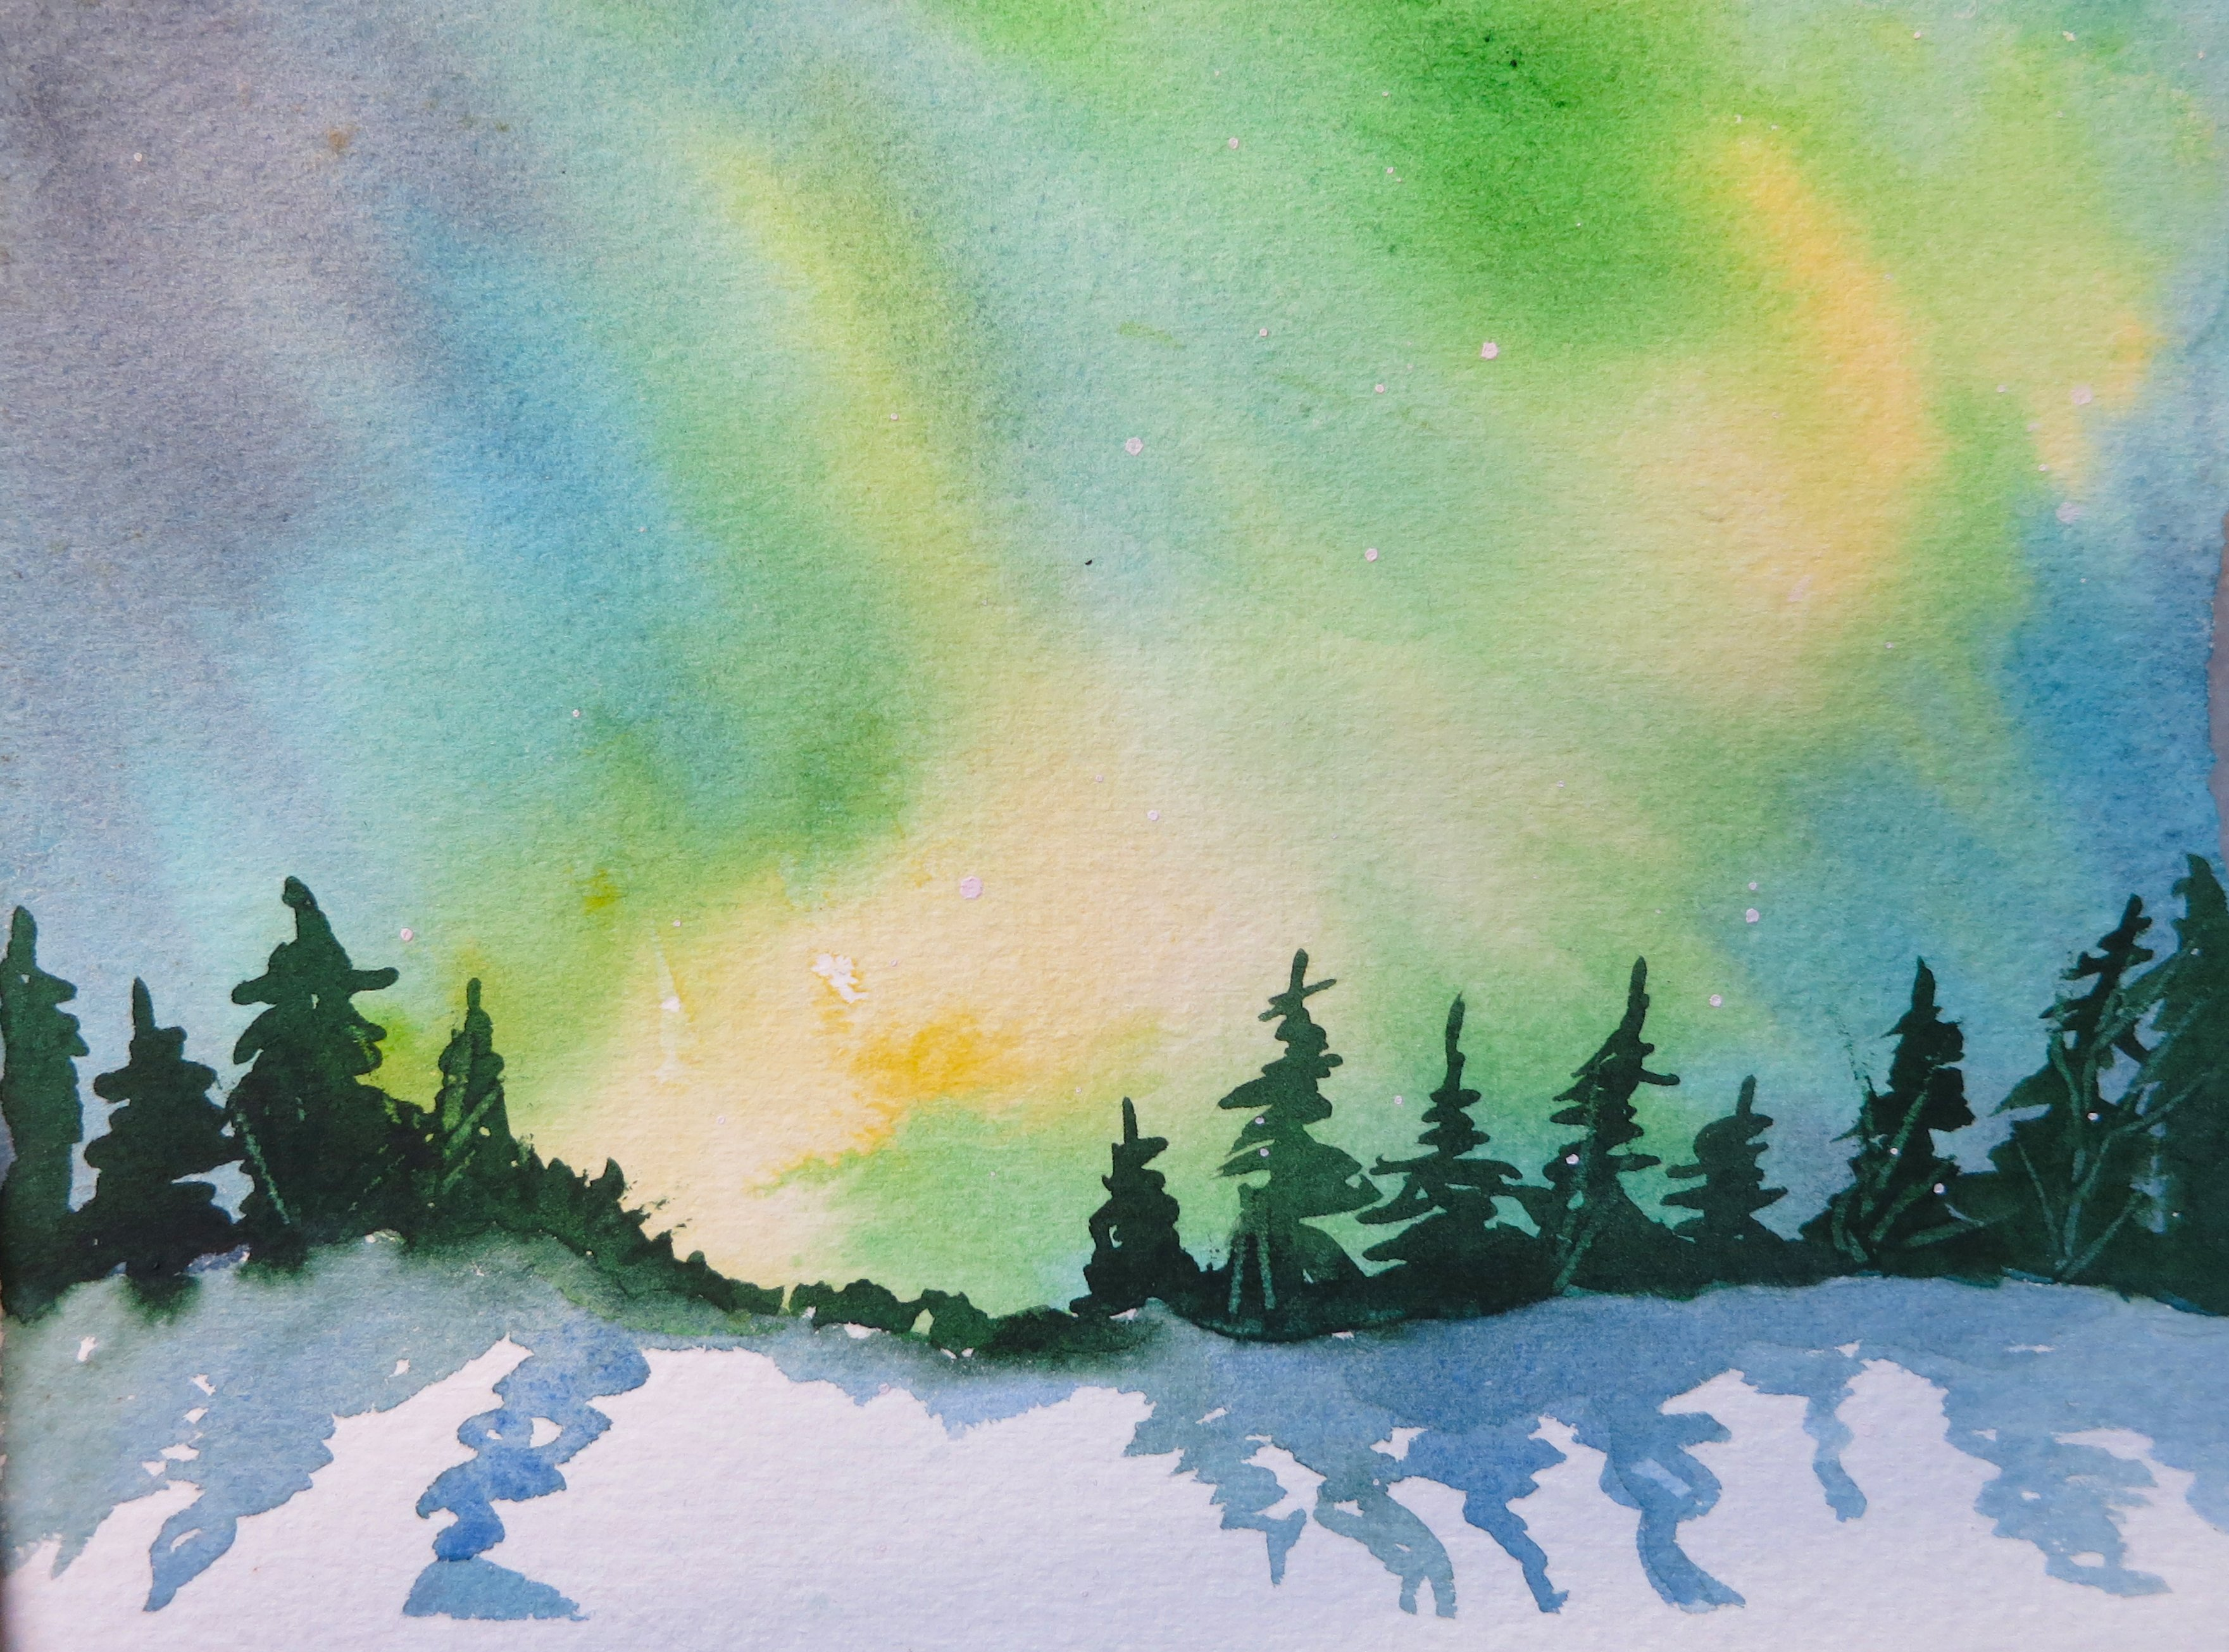 watercolour for beginners 9 aurora borealis or northern